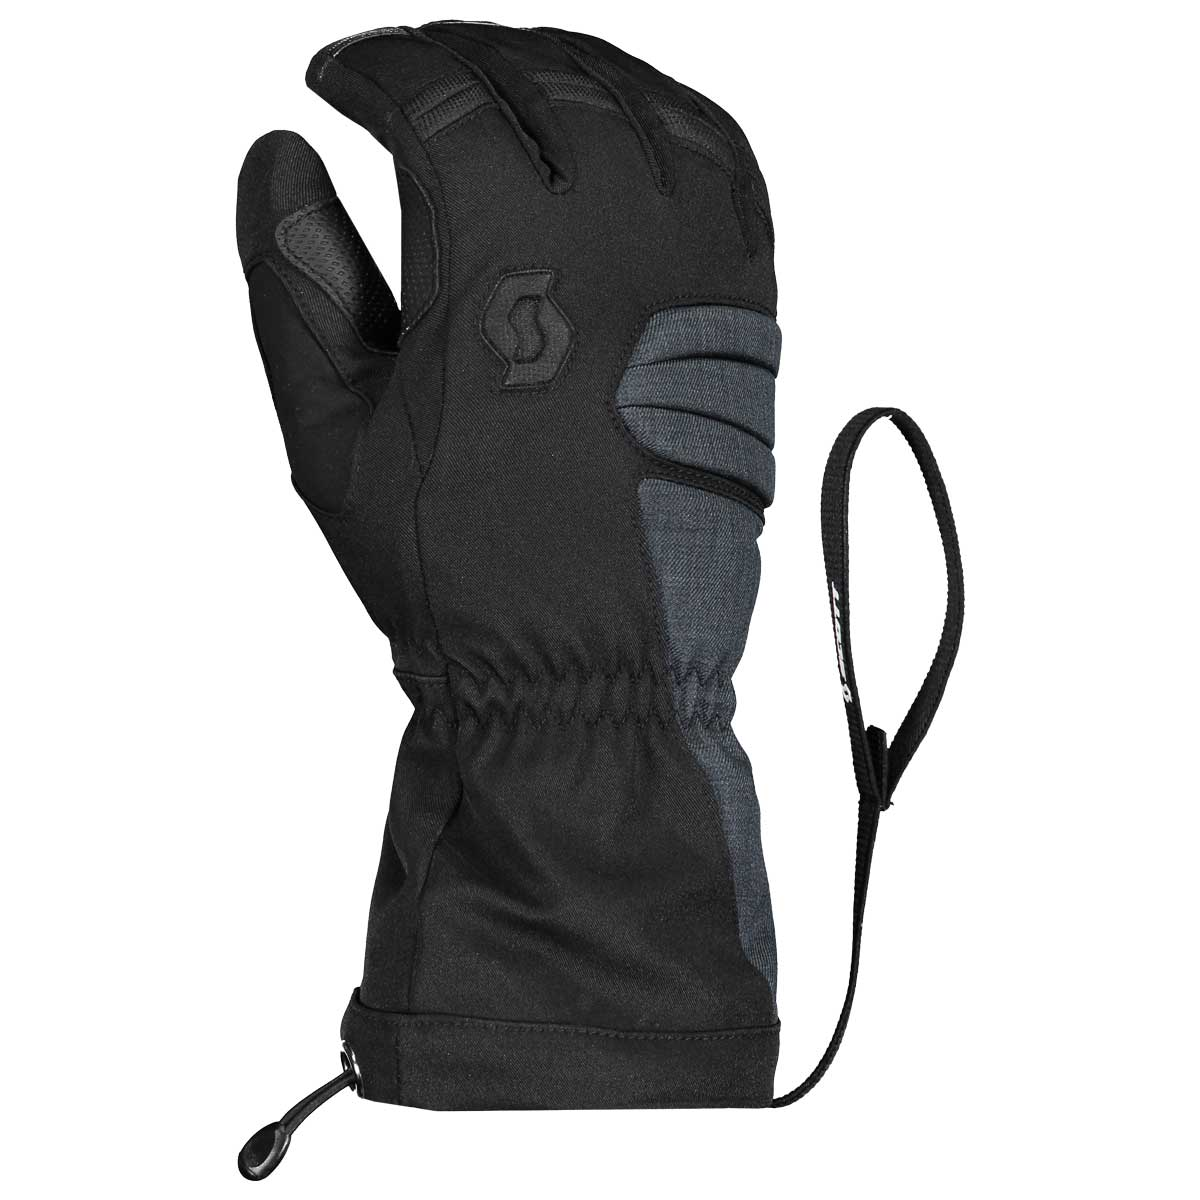 scott women's ultimate premium gtx glove in black